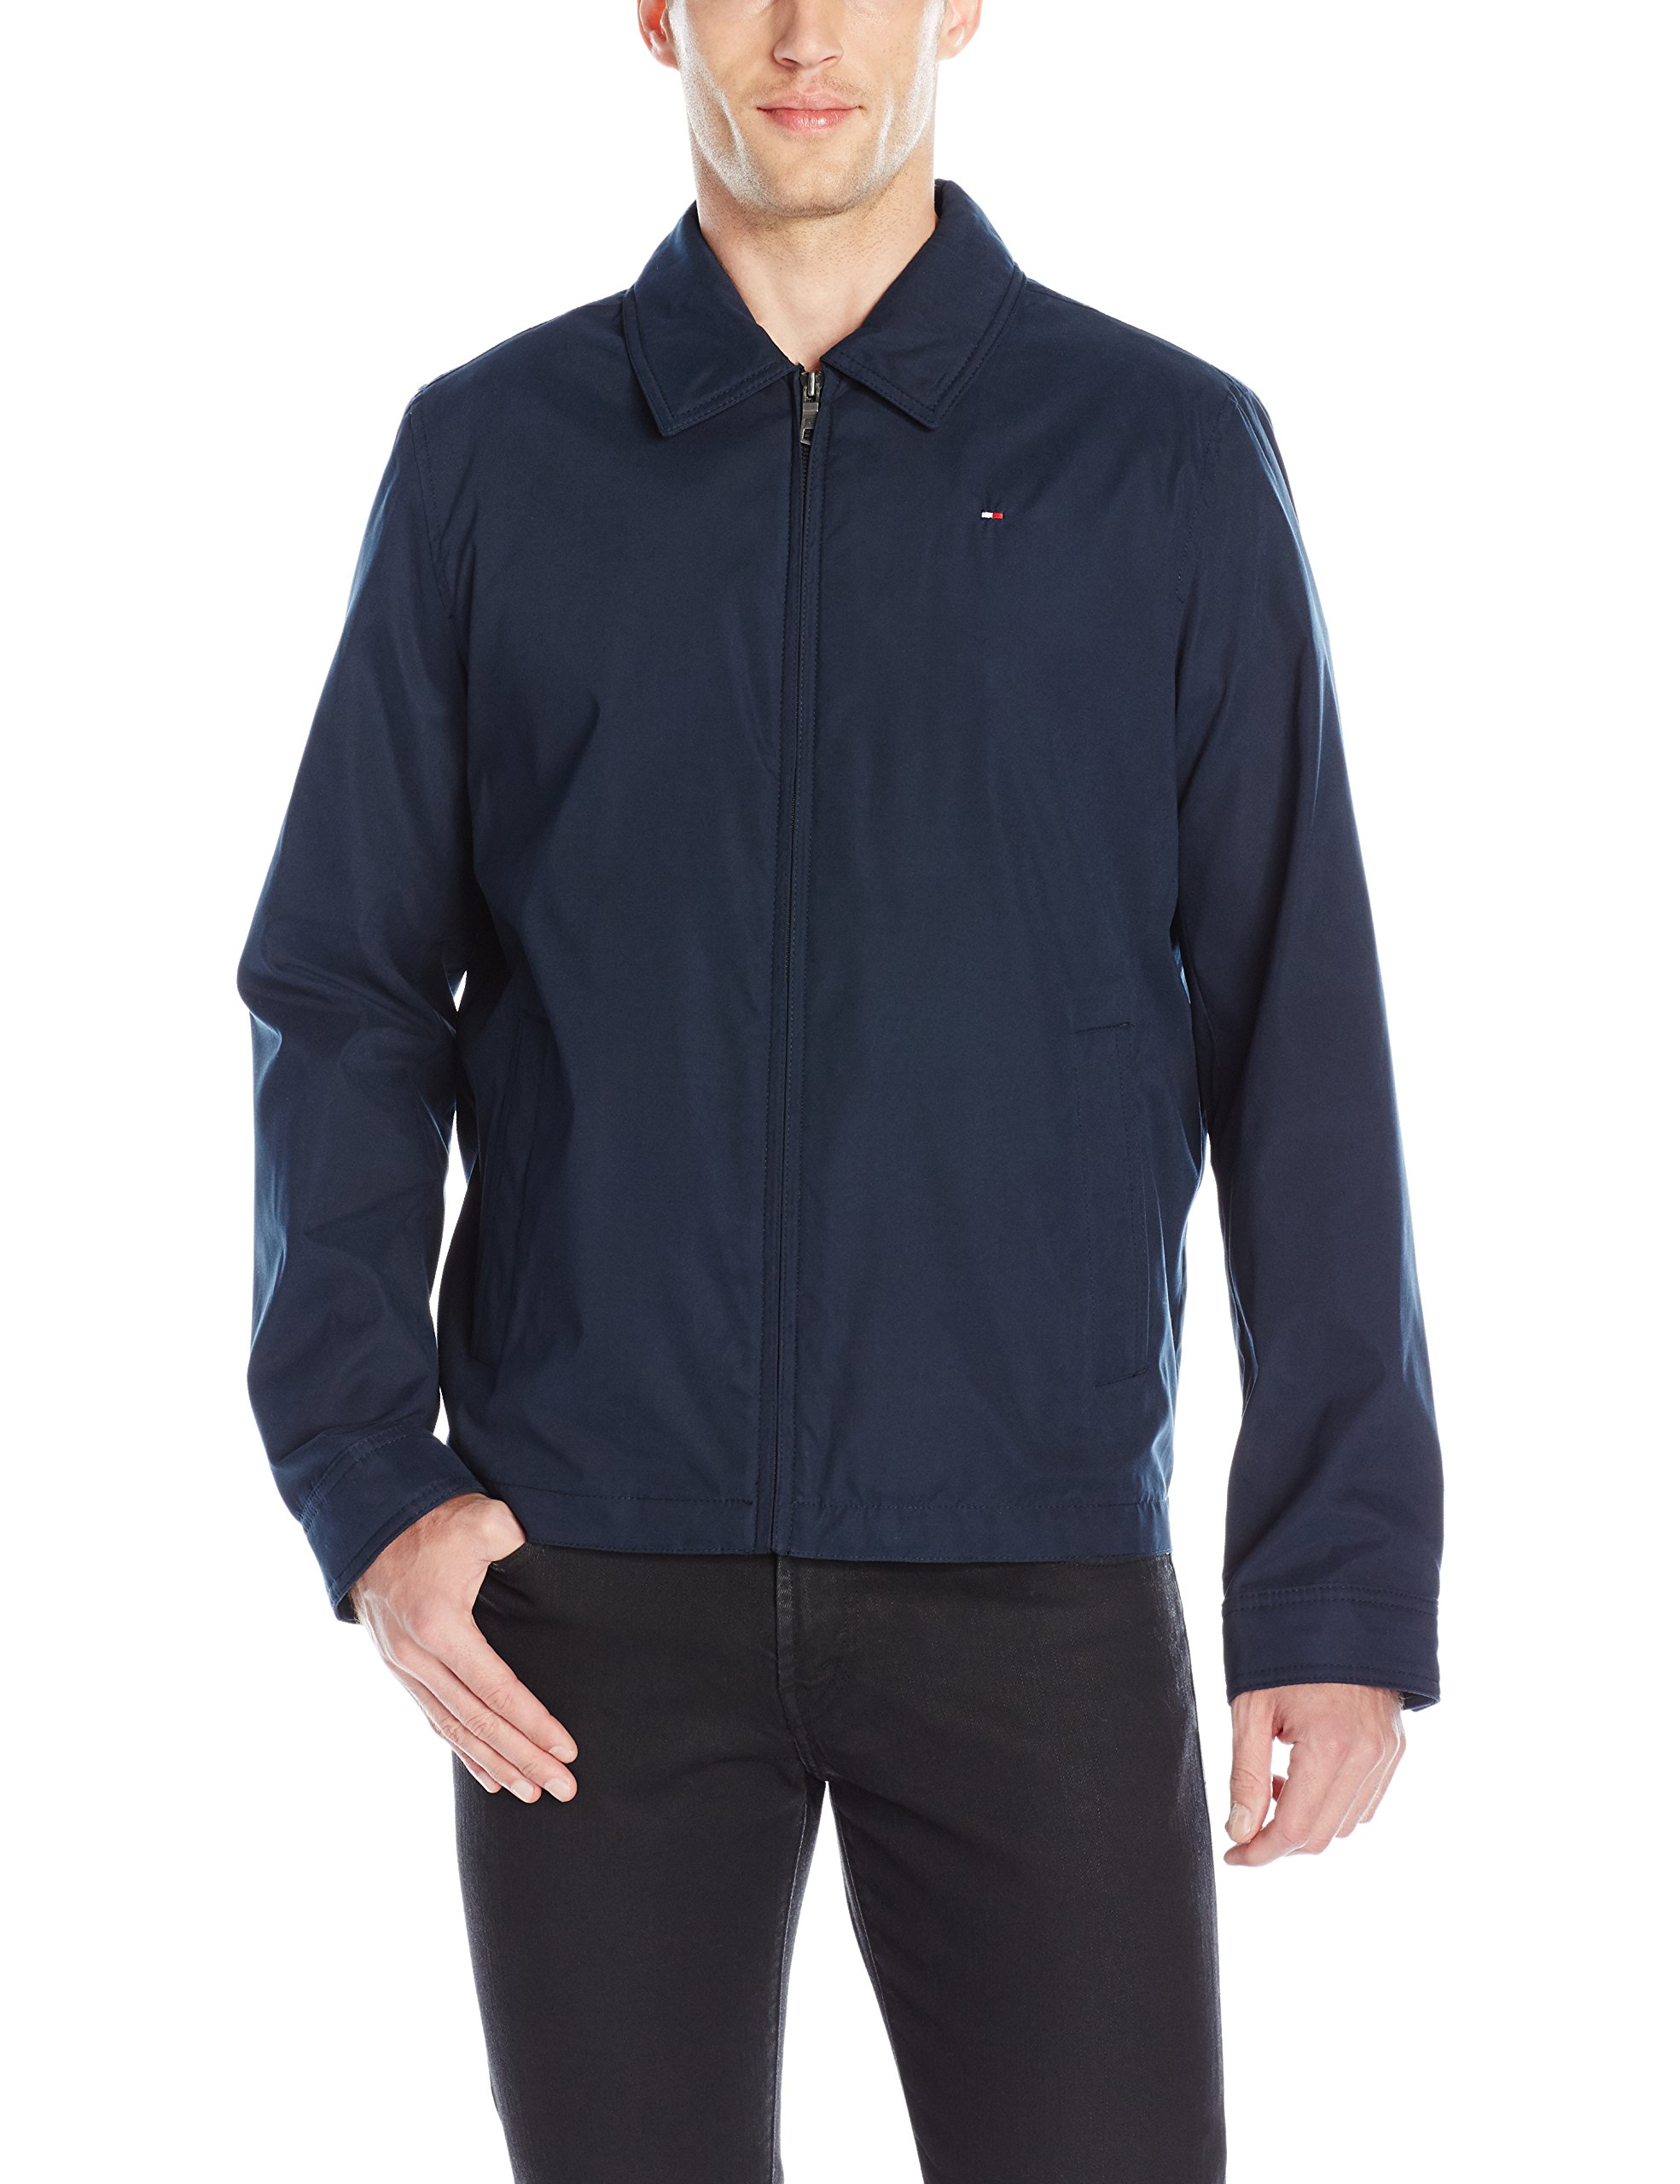 Tommy Hilfiger Men's Lightweight Microtwill Golf Jacket, Navy, XXL